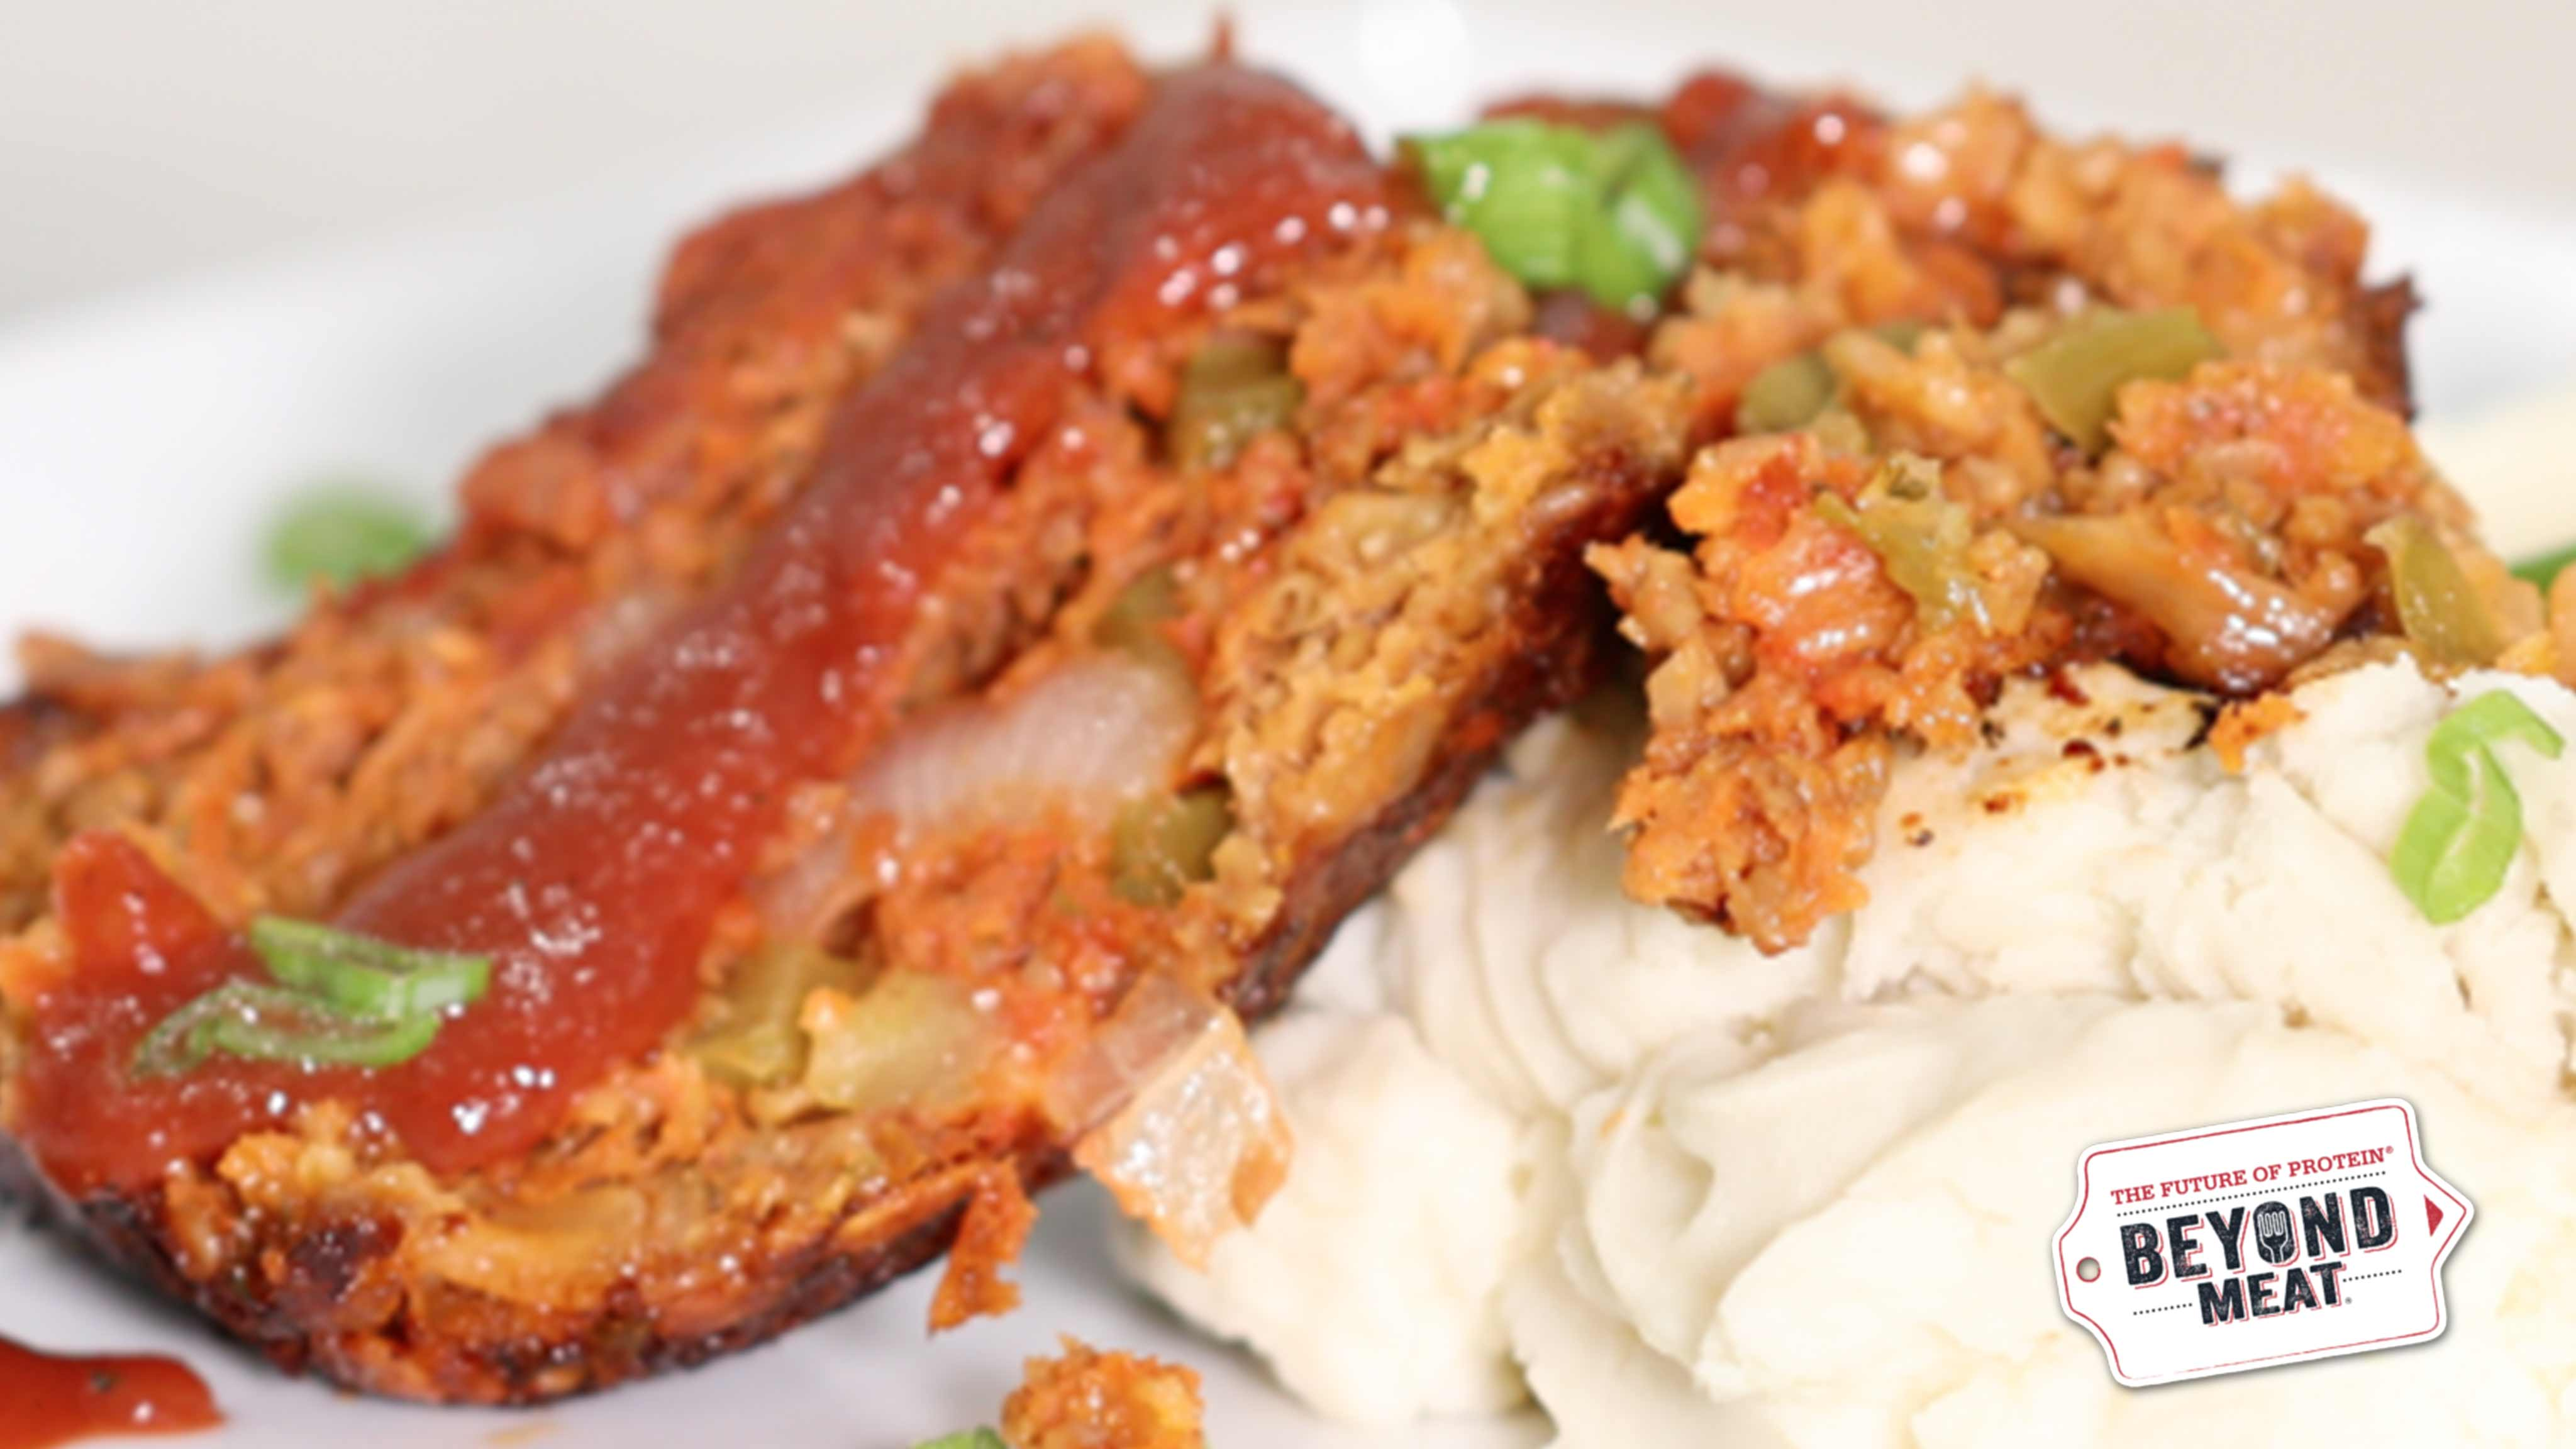 Beyond Meat BBQ Meatloaf